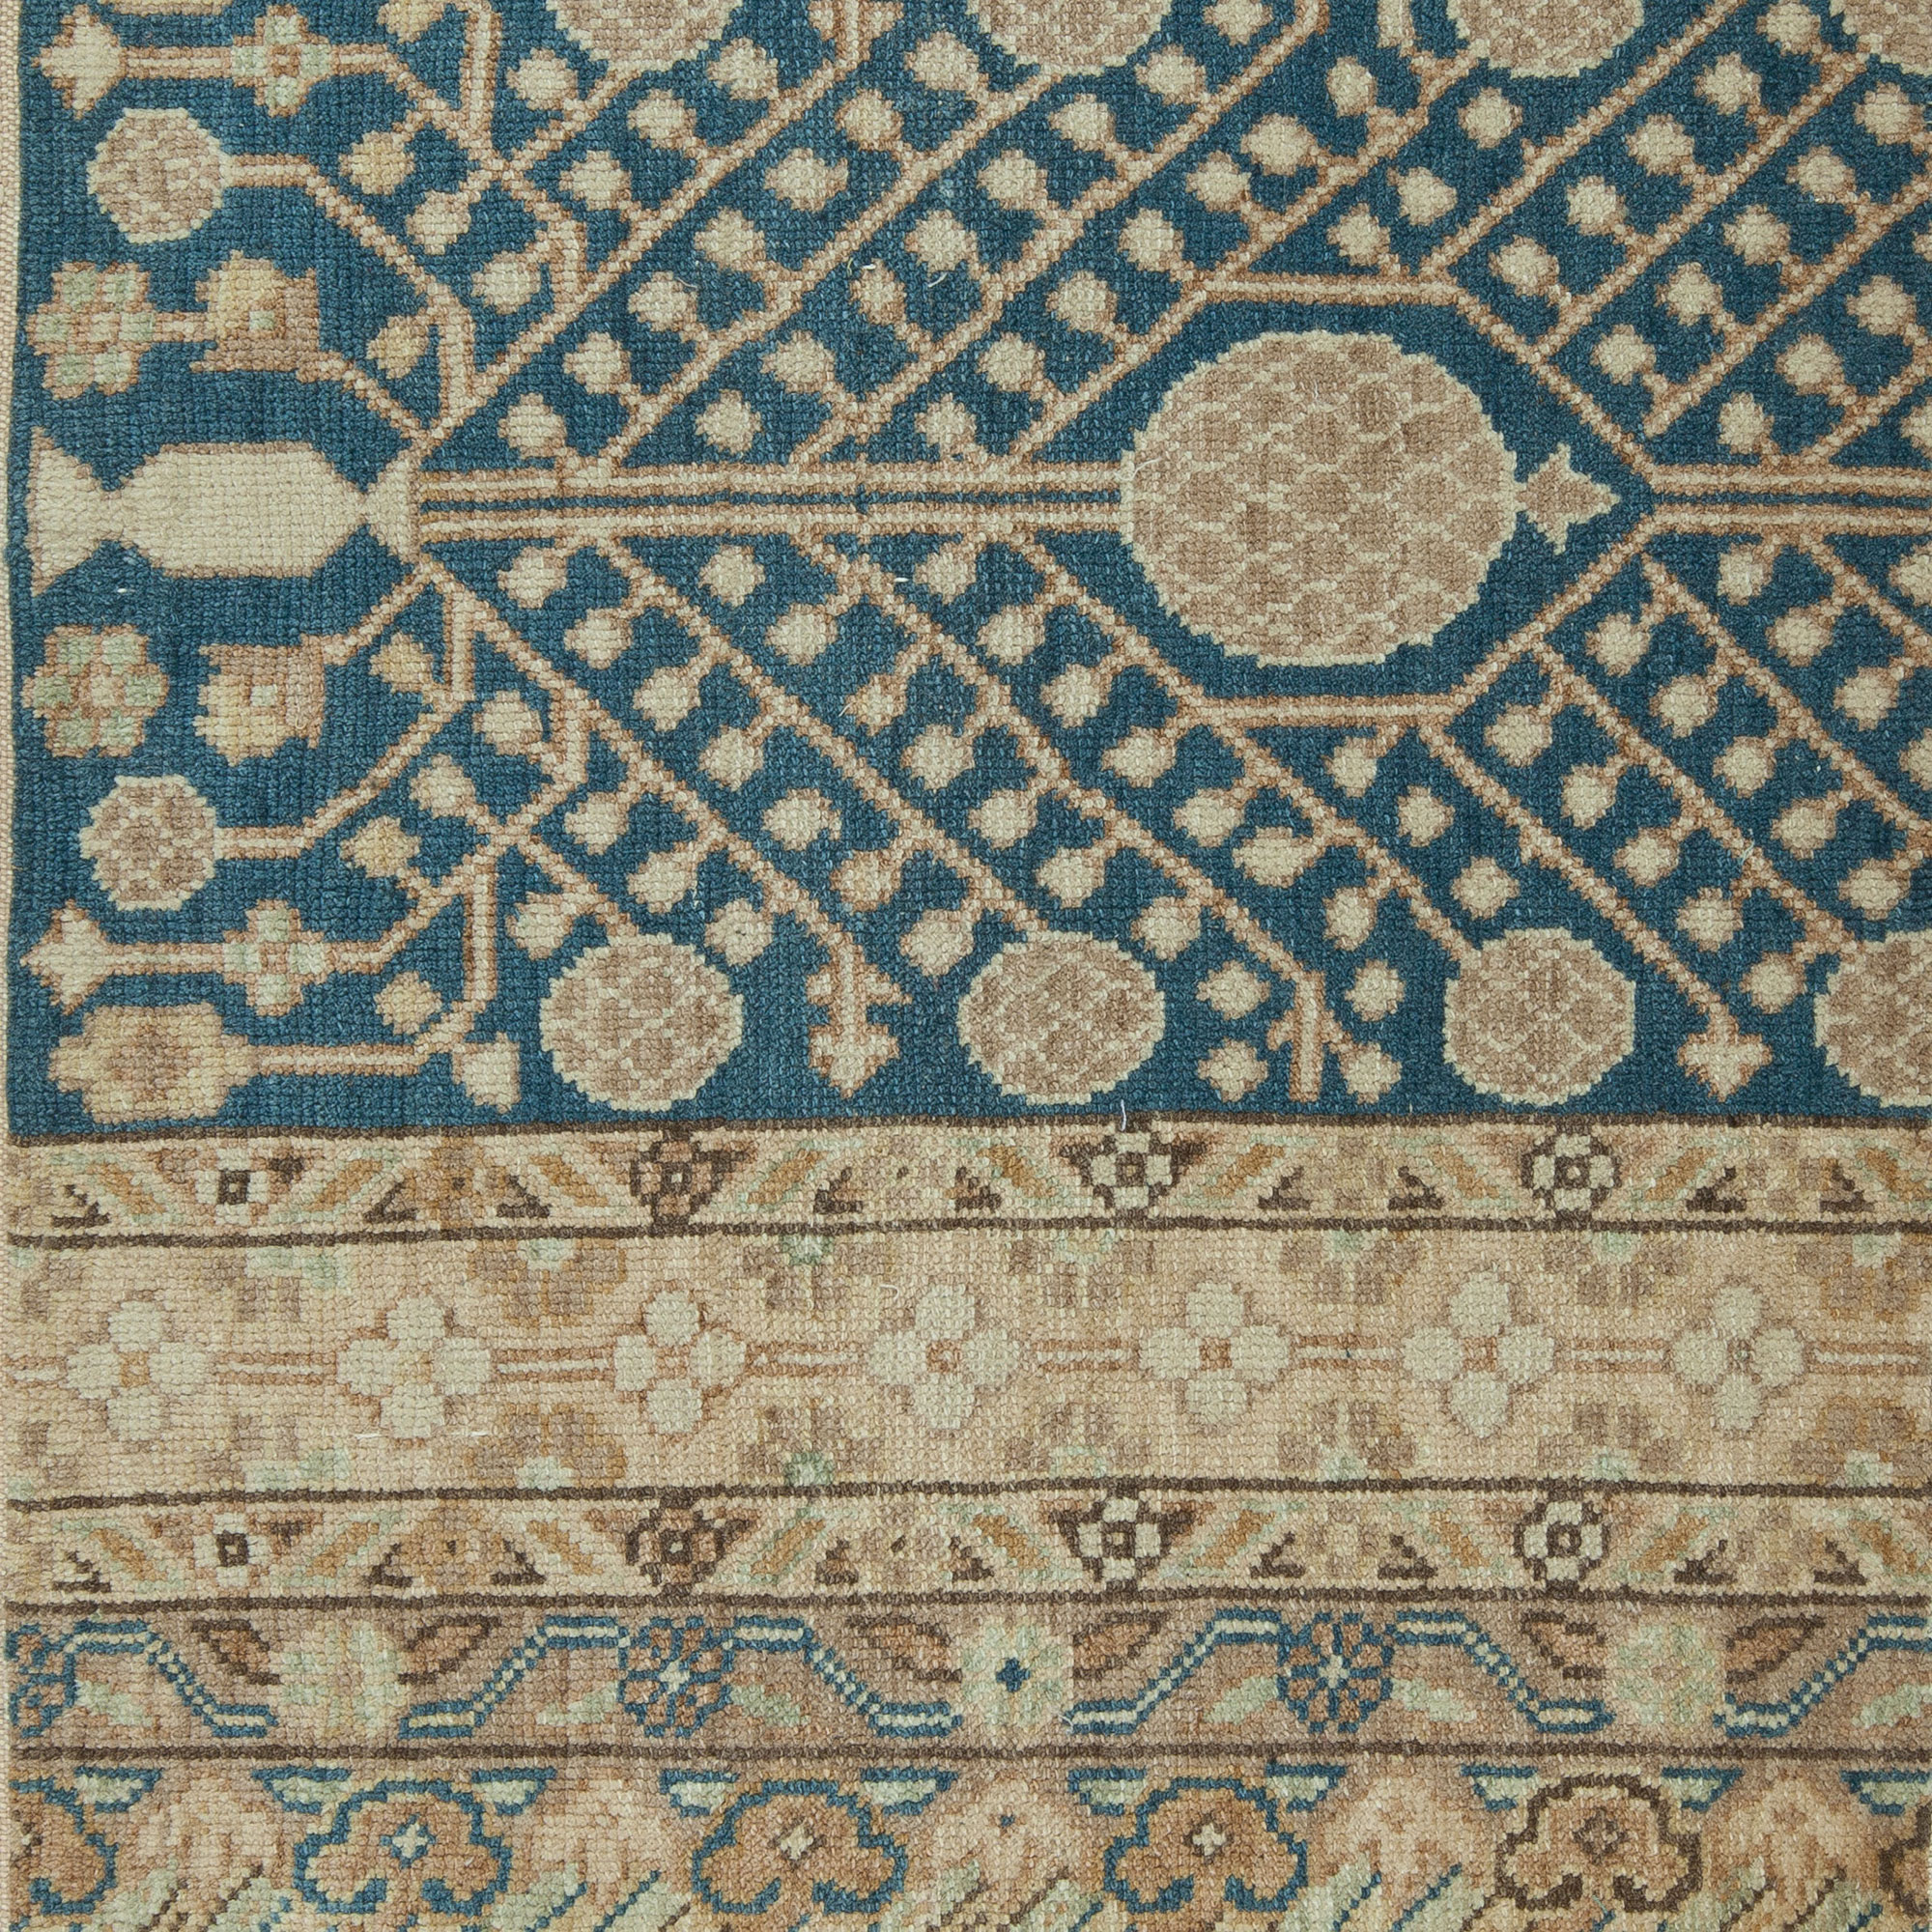 Traditional Rug Design S10182 S10182